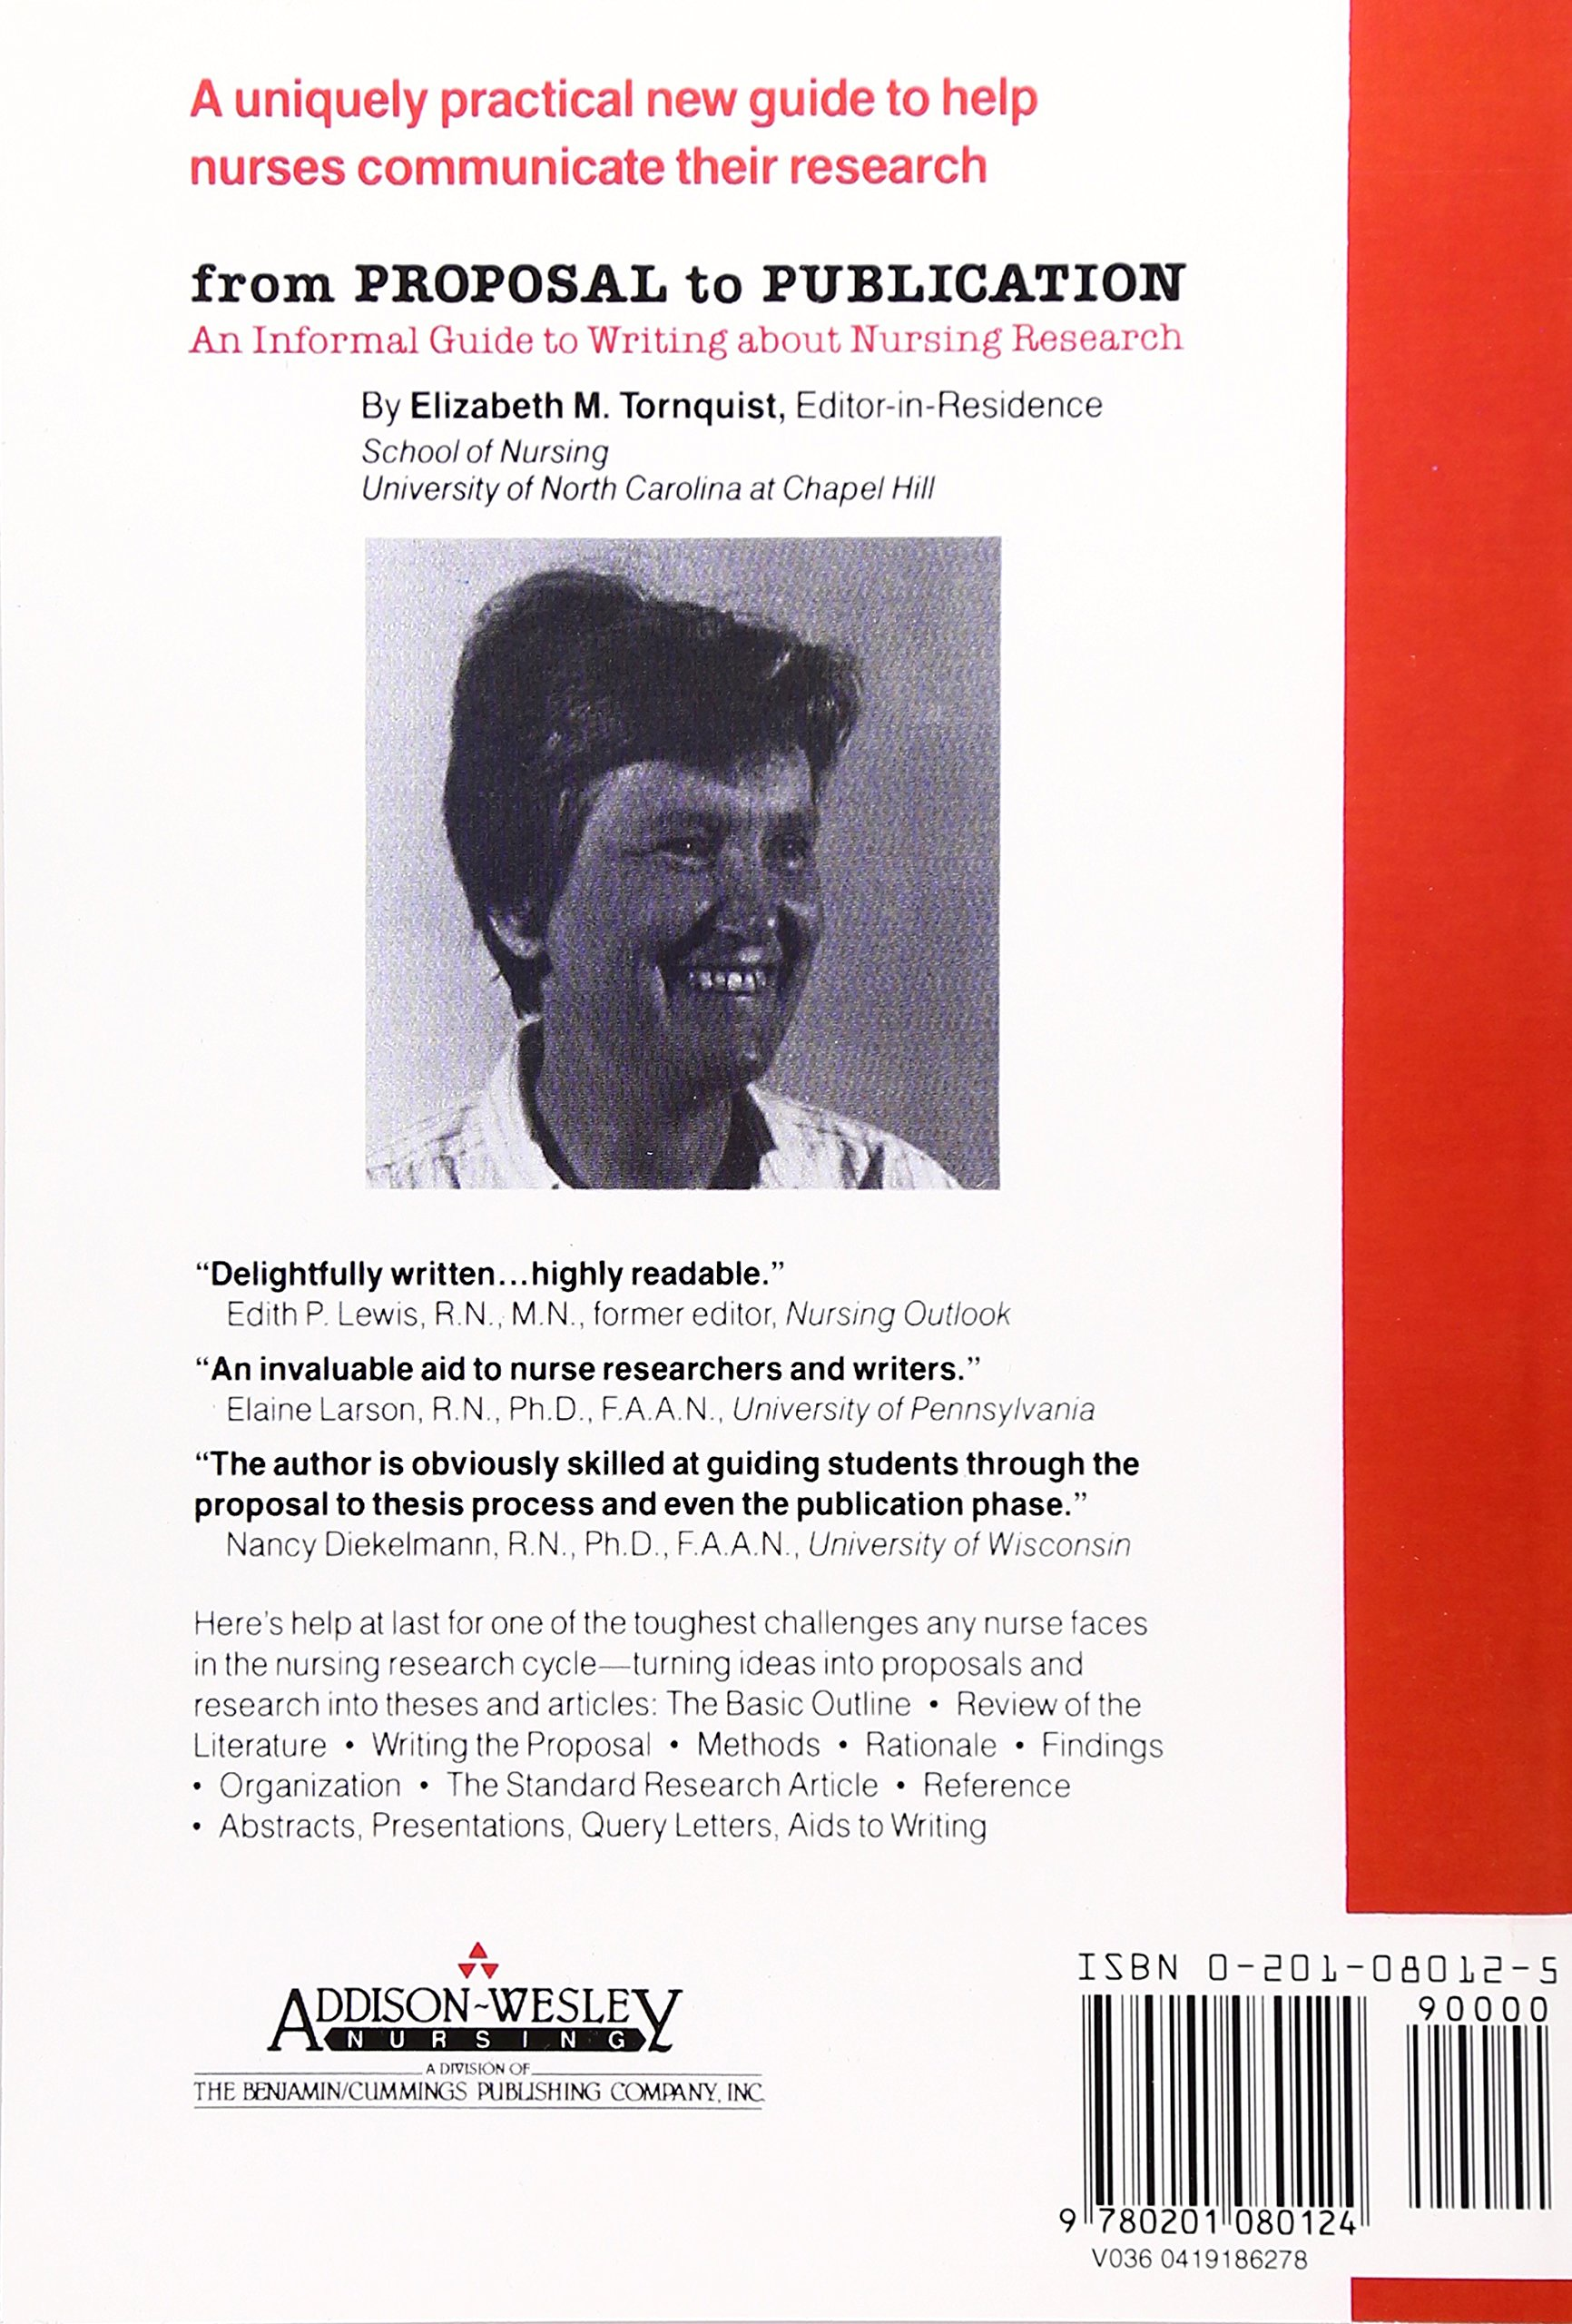 From Proposal To Publication An Informal Guide Writing About Nursing Research Amazoncouk MA Elizabeth M Tornquist Books